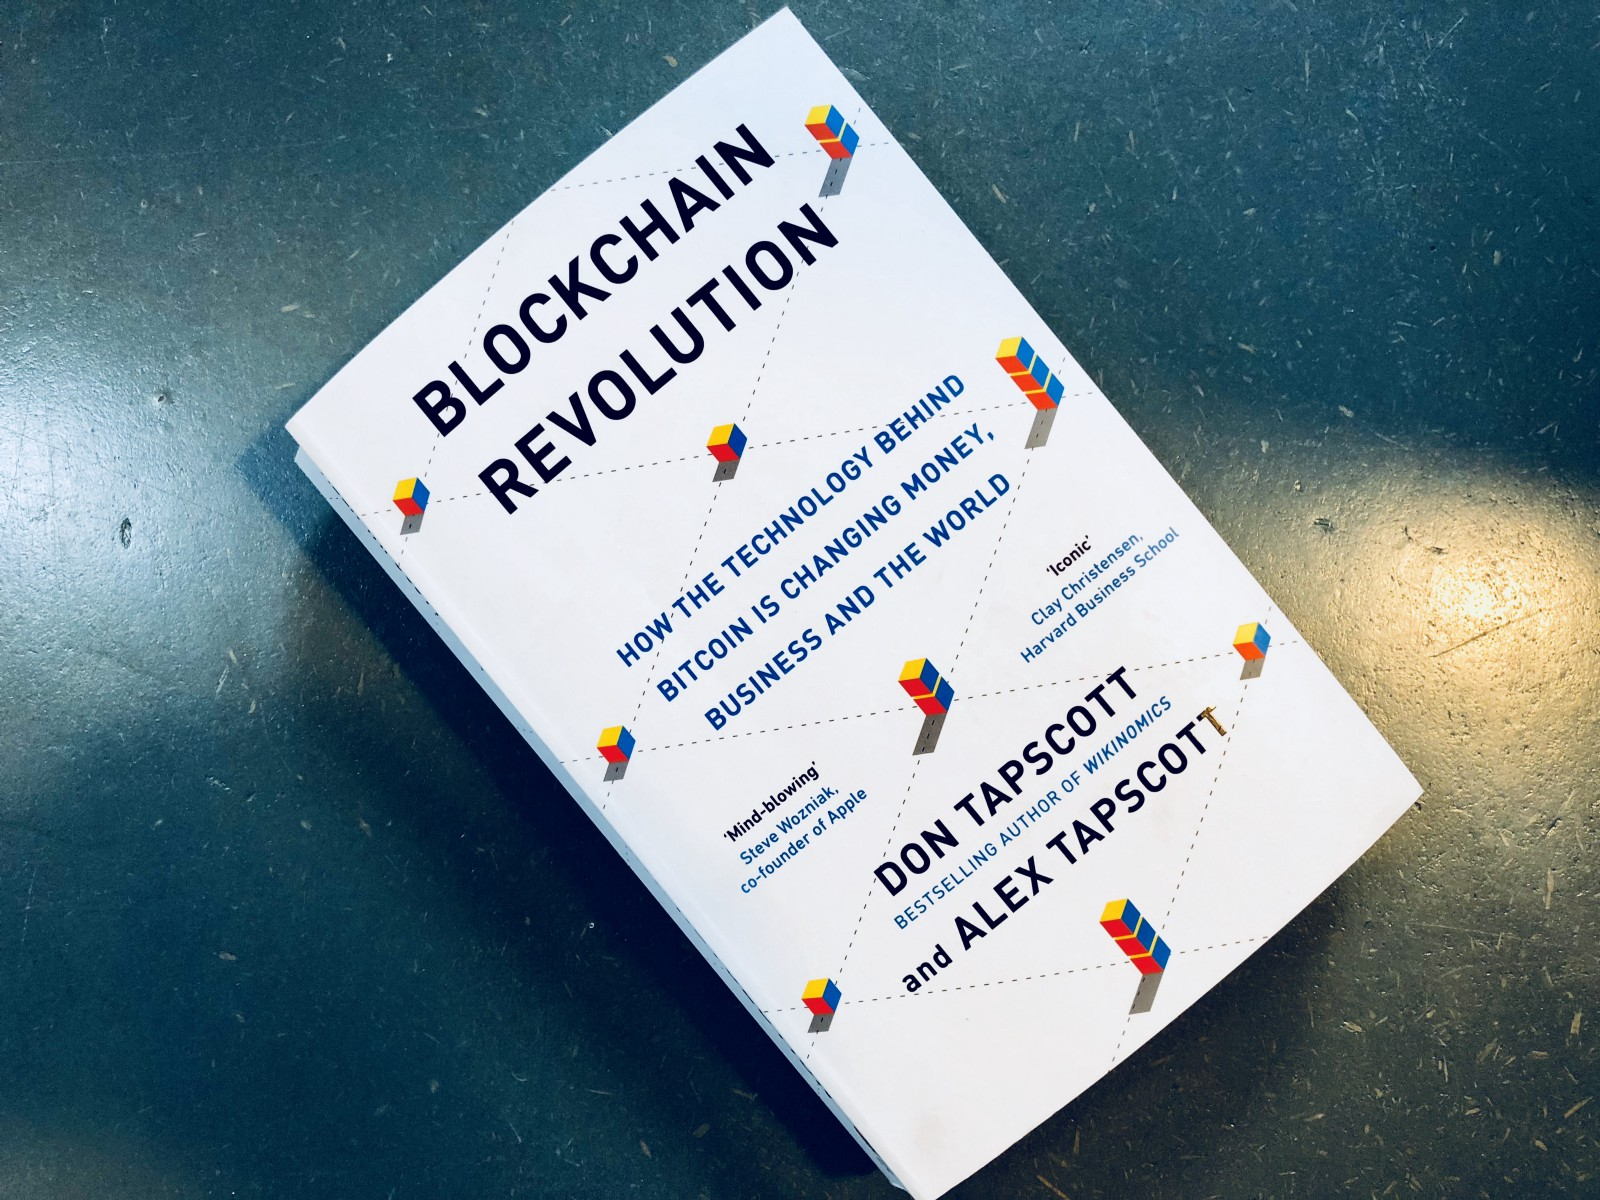 A Few Thoughts On Blockchain Revolution By Don And Alex Tapscott